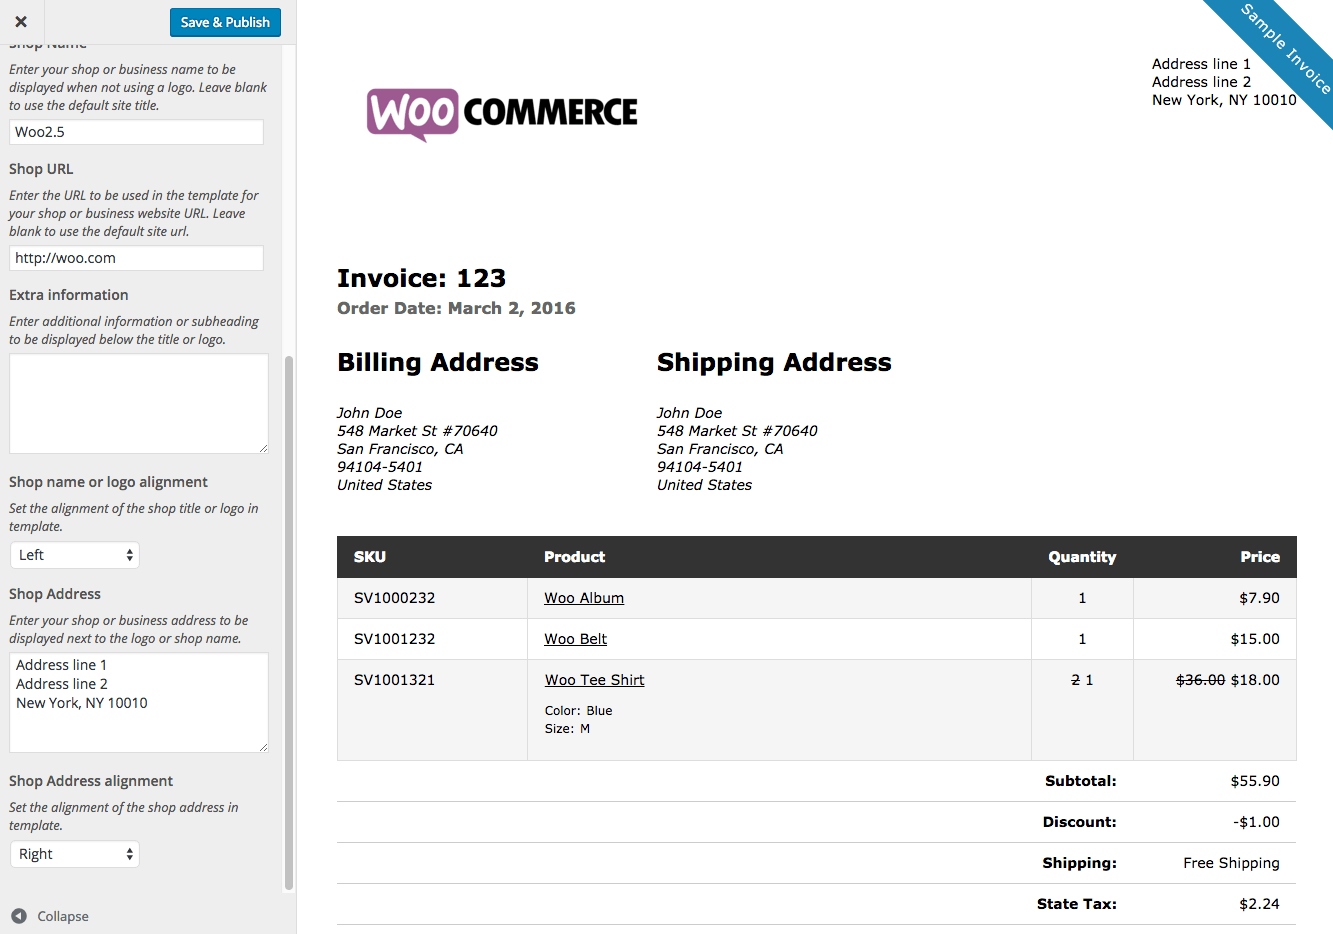 Reliefworkersus  Mesmerizing Woocommerce Print Invoices Amp Packing Lists  Woocommerce Docs With Foxy Woocommerce Print Invoices  Packing Lists Customizer With Charming Receipt Database Software Also Acknowledge Receipt Of This Email In Addition Easy Receipt Scanner And Rental Receipt Pdf As Well As Refund Receipt Additionally Best Way To Organize Receipts For Small Business From Docswoocommercecom With Reliefworkersus  Foxy Woocommerce Print Invoices Amp Packing Lists  Woocommerce Docs With Charming Woocommerce Print Invoices  Packing Lists Customizer And Mesmerizing Receipt Database Software Also Acknowledge Receipt Of This Email In Addition Easy Receipt Scanner From Docswoocommercecom